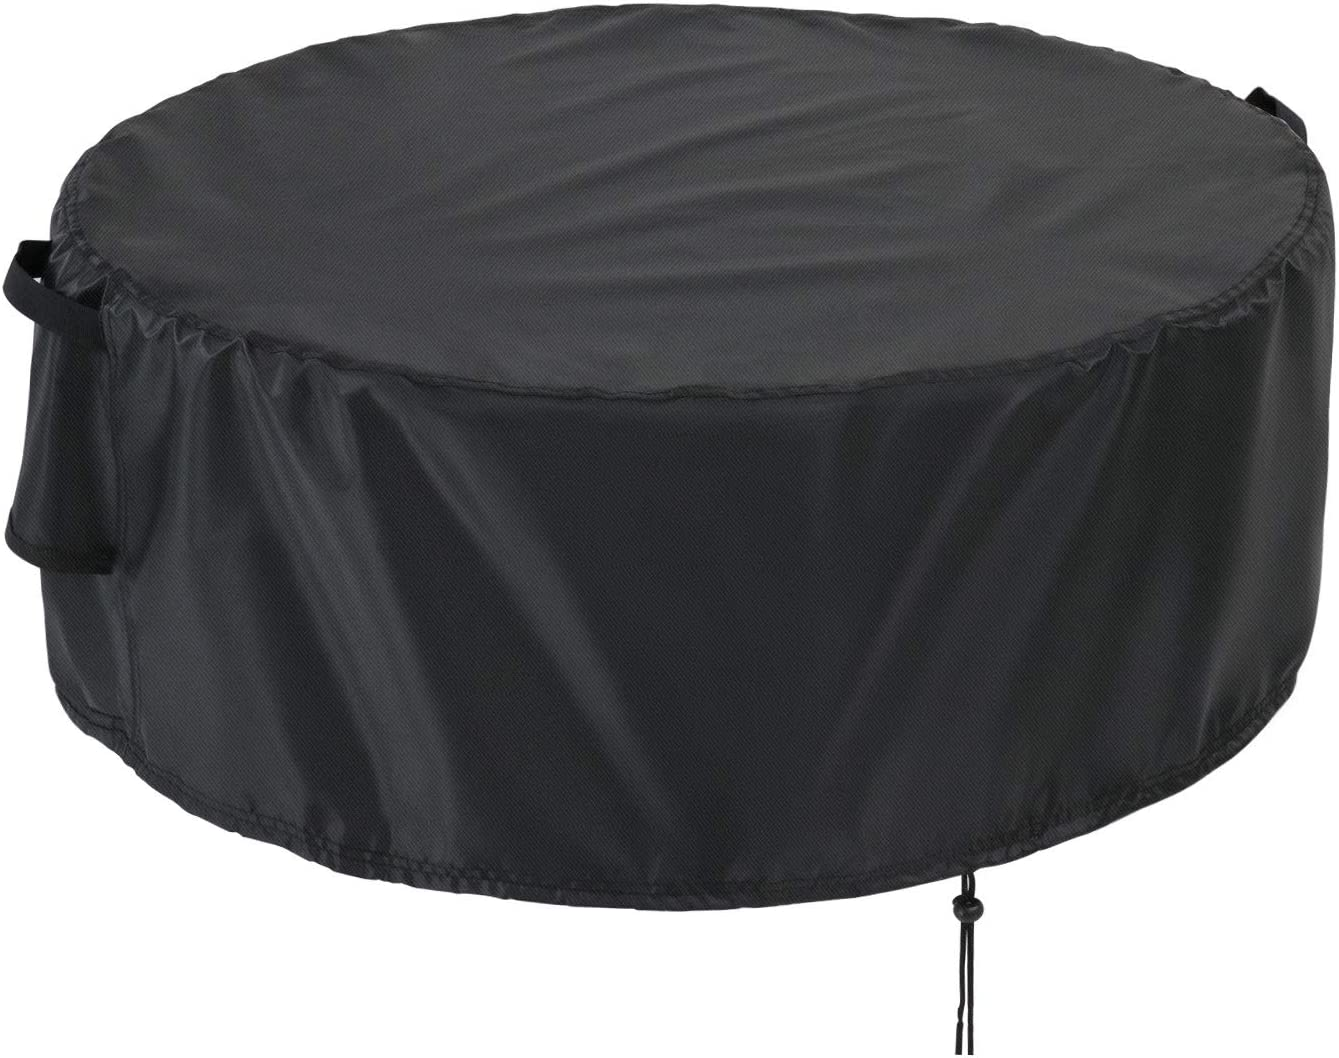 Kingling Outdoor Furniture Cover Waterproof, Waterproof Round Patio Table & Chair Set Cover, Heavy Duty Outdoor Lawn Patio Table Covers with 2 Buckles, Black (60